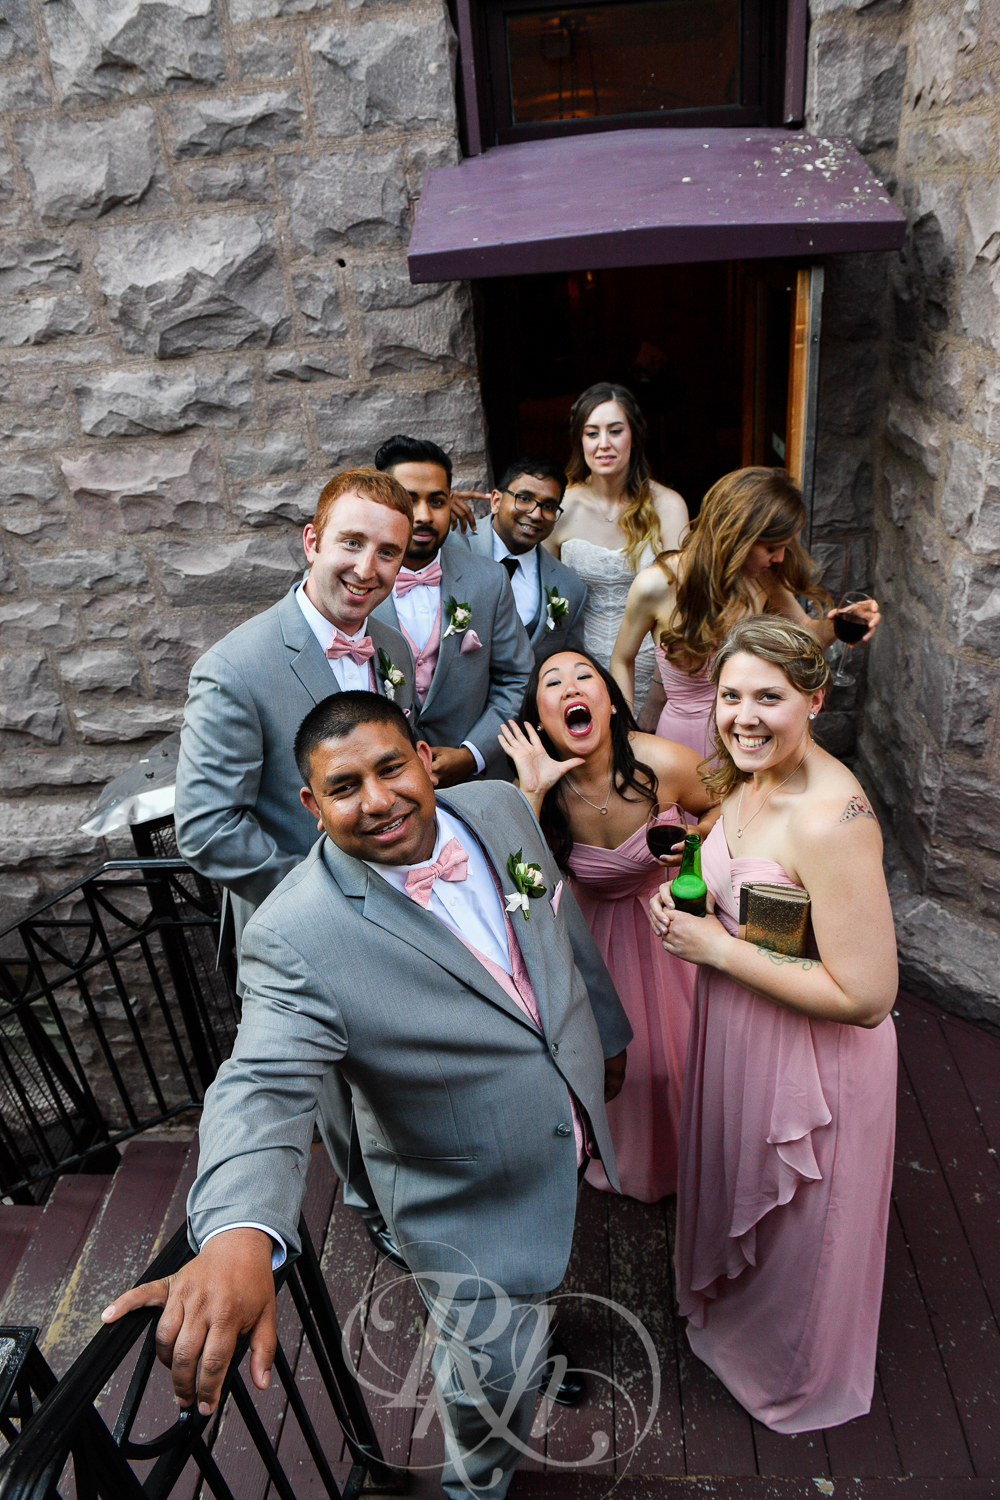 Megan & Gavin - Minnesota Wedding Photography - Van Dusen Mansion - RKH Ikmages -36.jpg